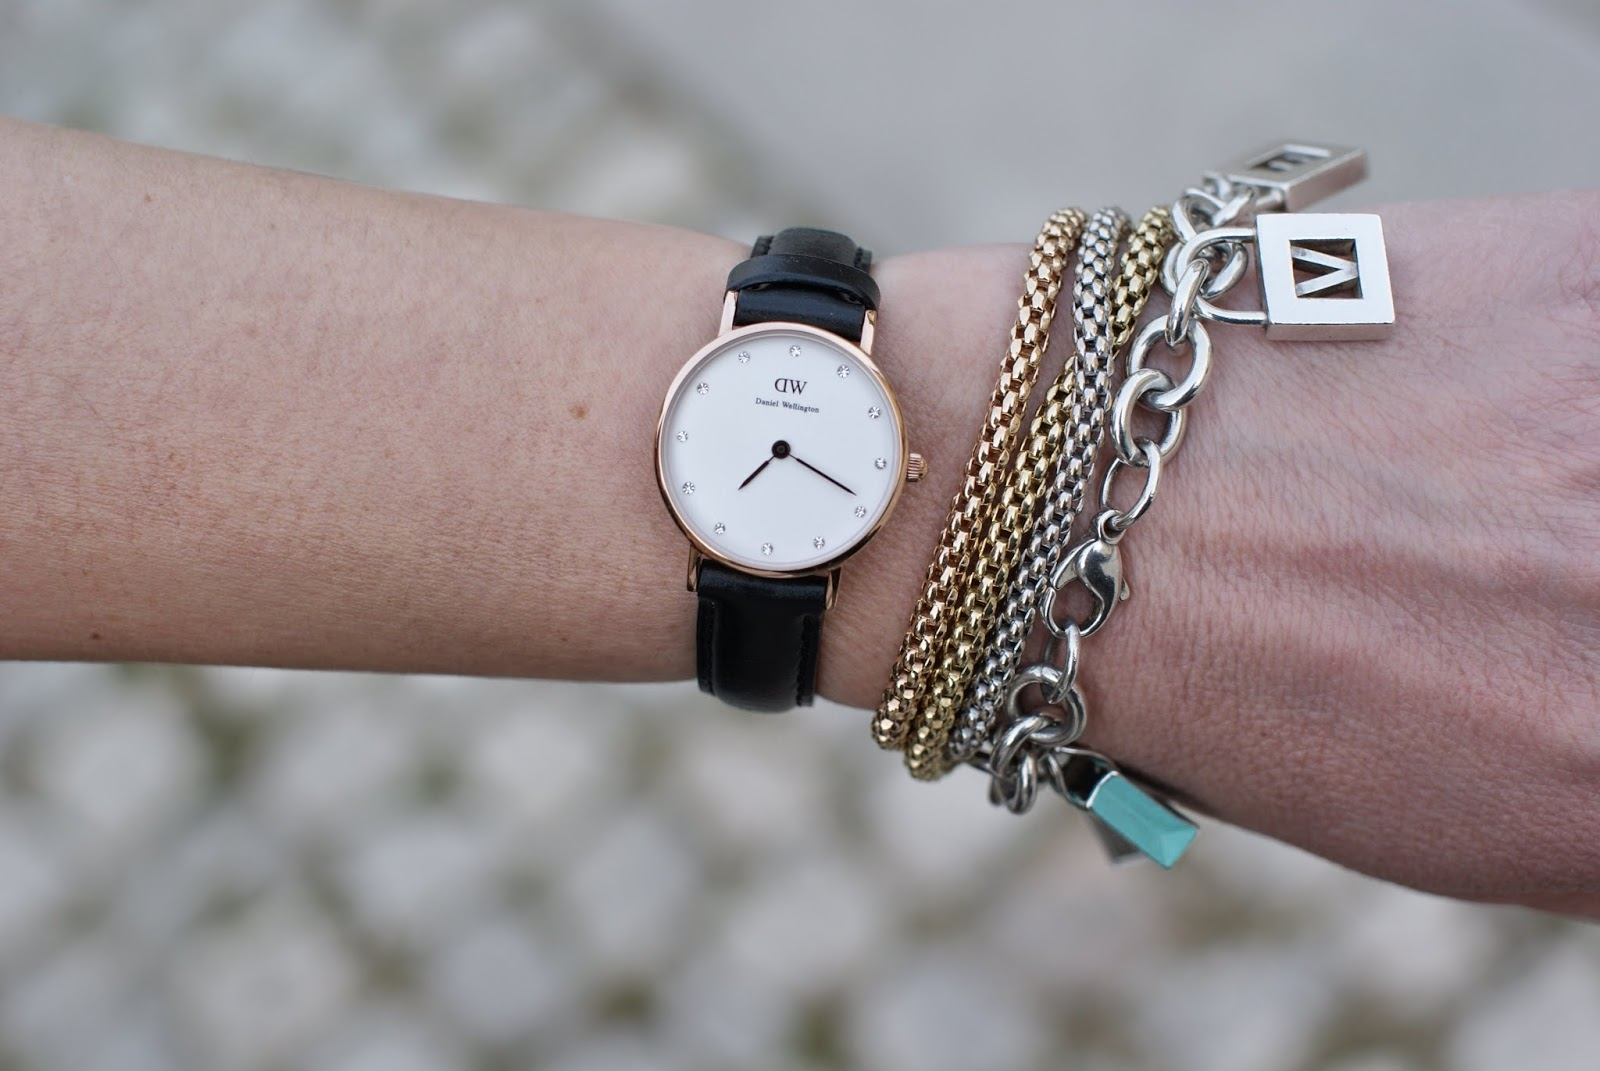 Daniel Wellington classy sheffield watch, Fope bracelets, Tiffany charms, Fashion and Cookies, fashion blogger